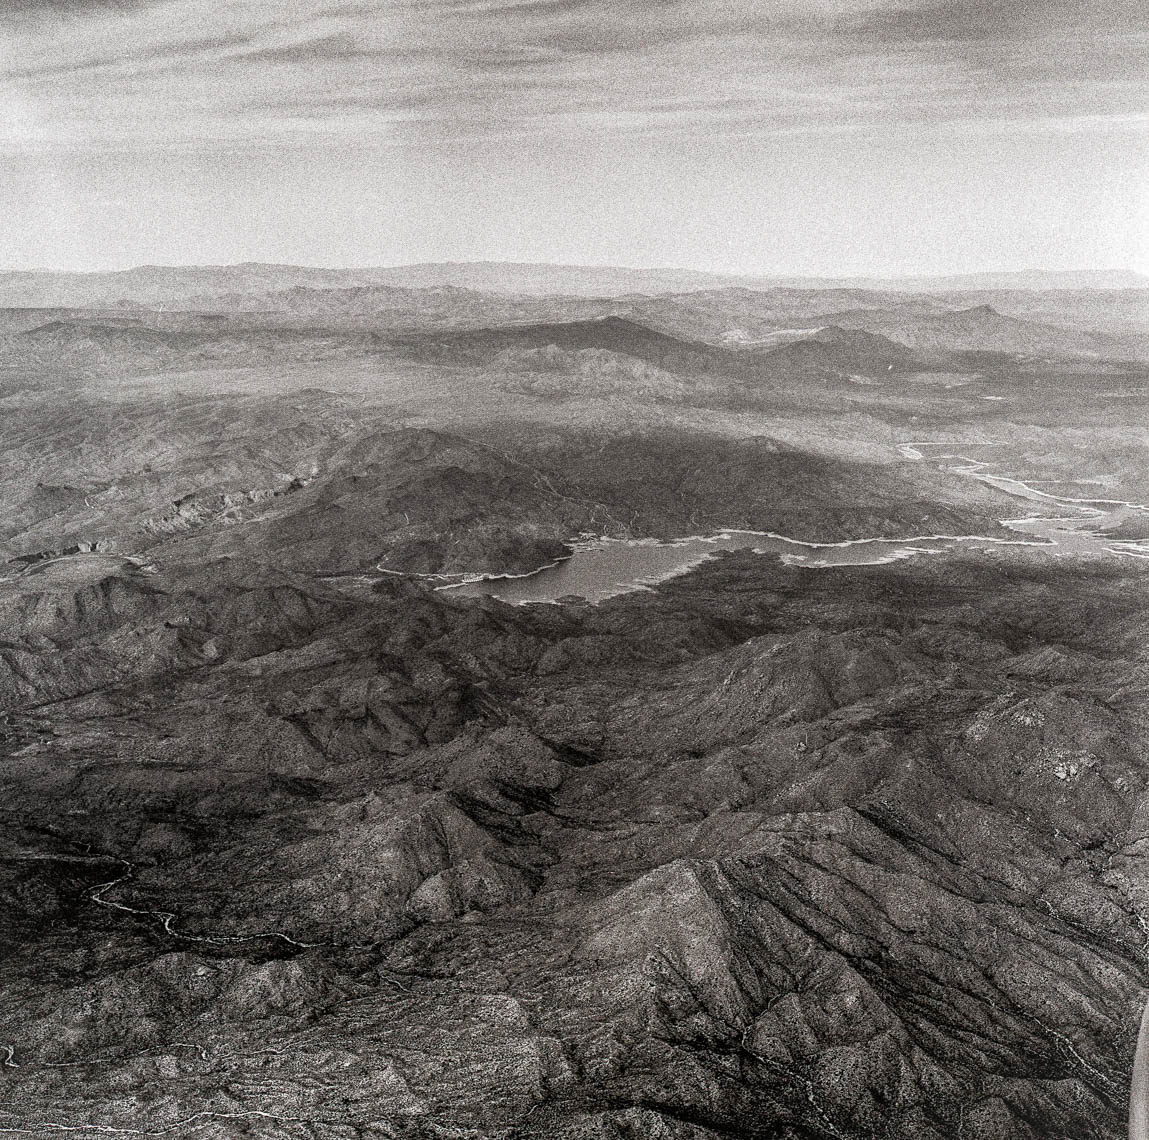 Landscape above Arizona, from the window seat.